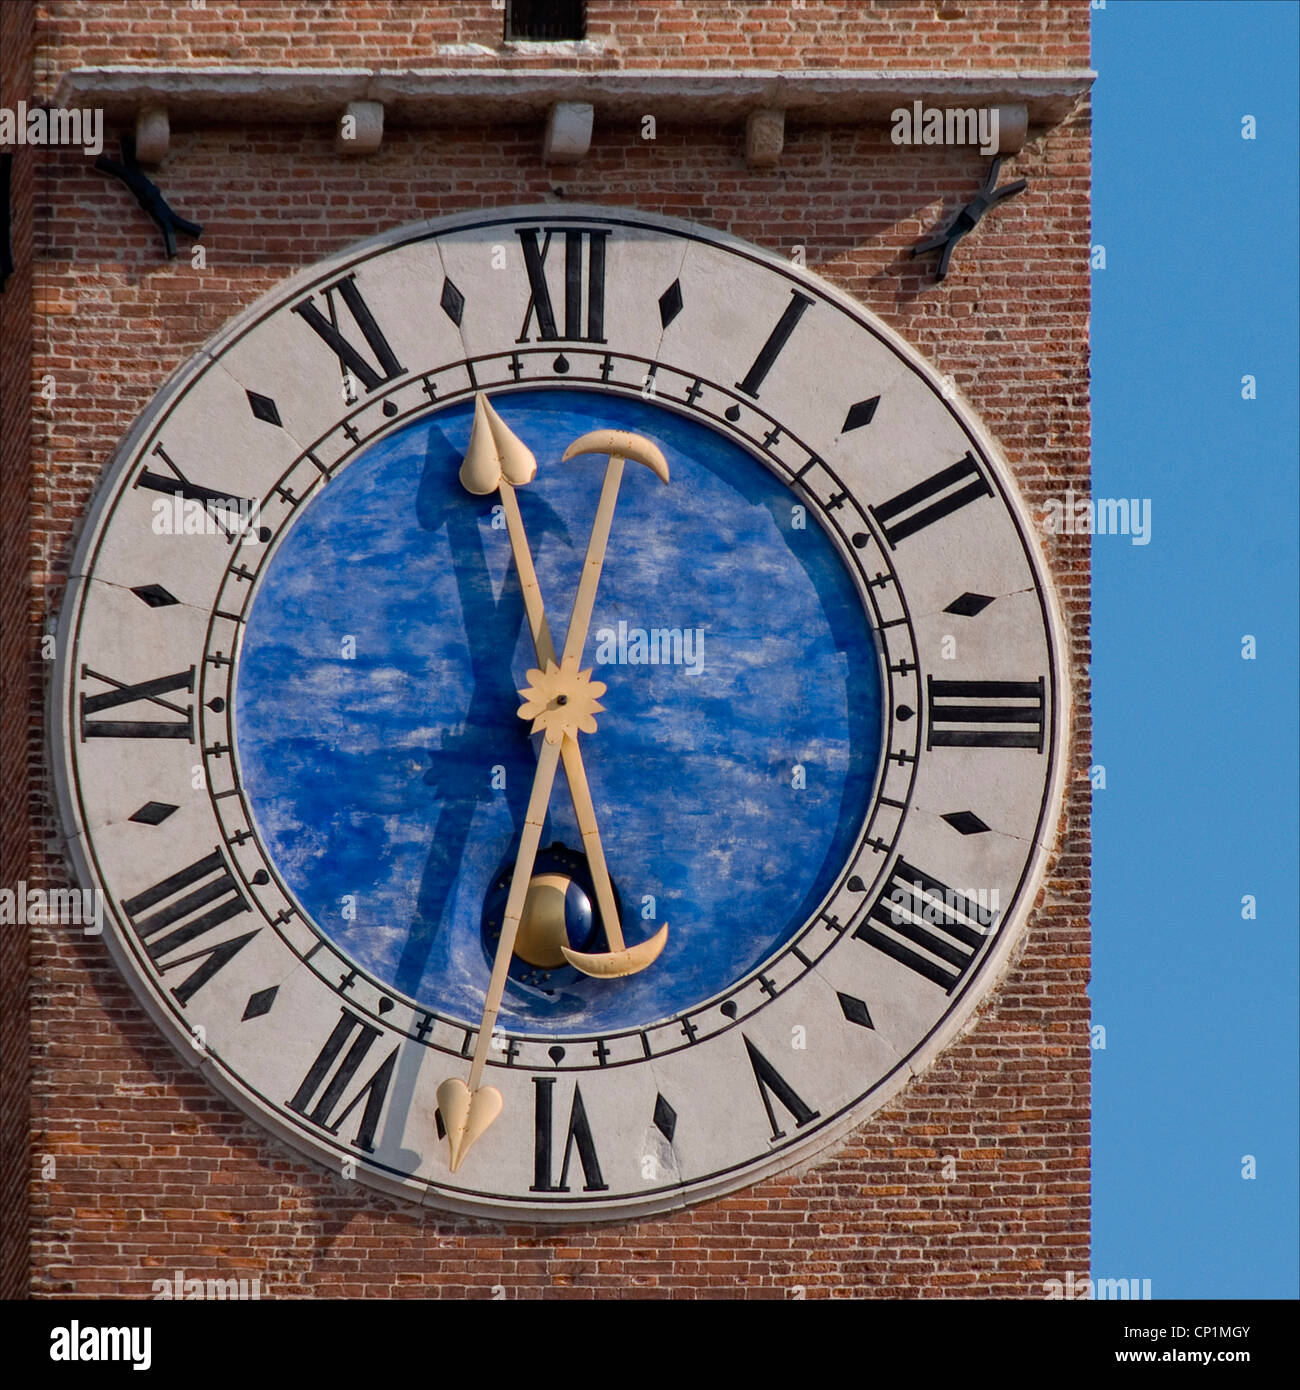 Clock Face With Roman Numerals On Brick Exterior Venice Italy Stock Photo Royalty Free Image